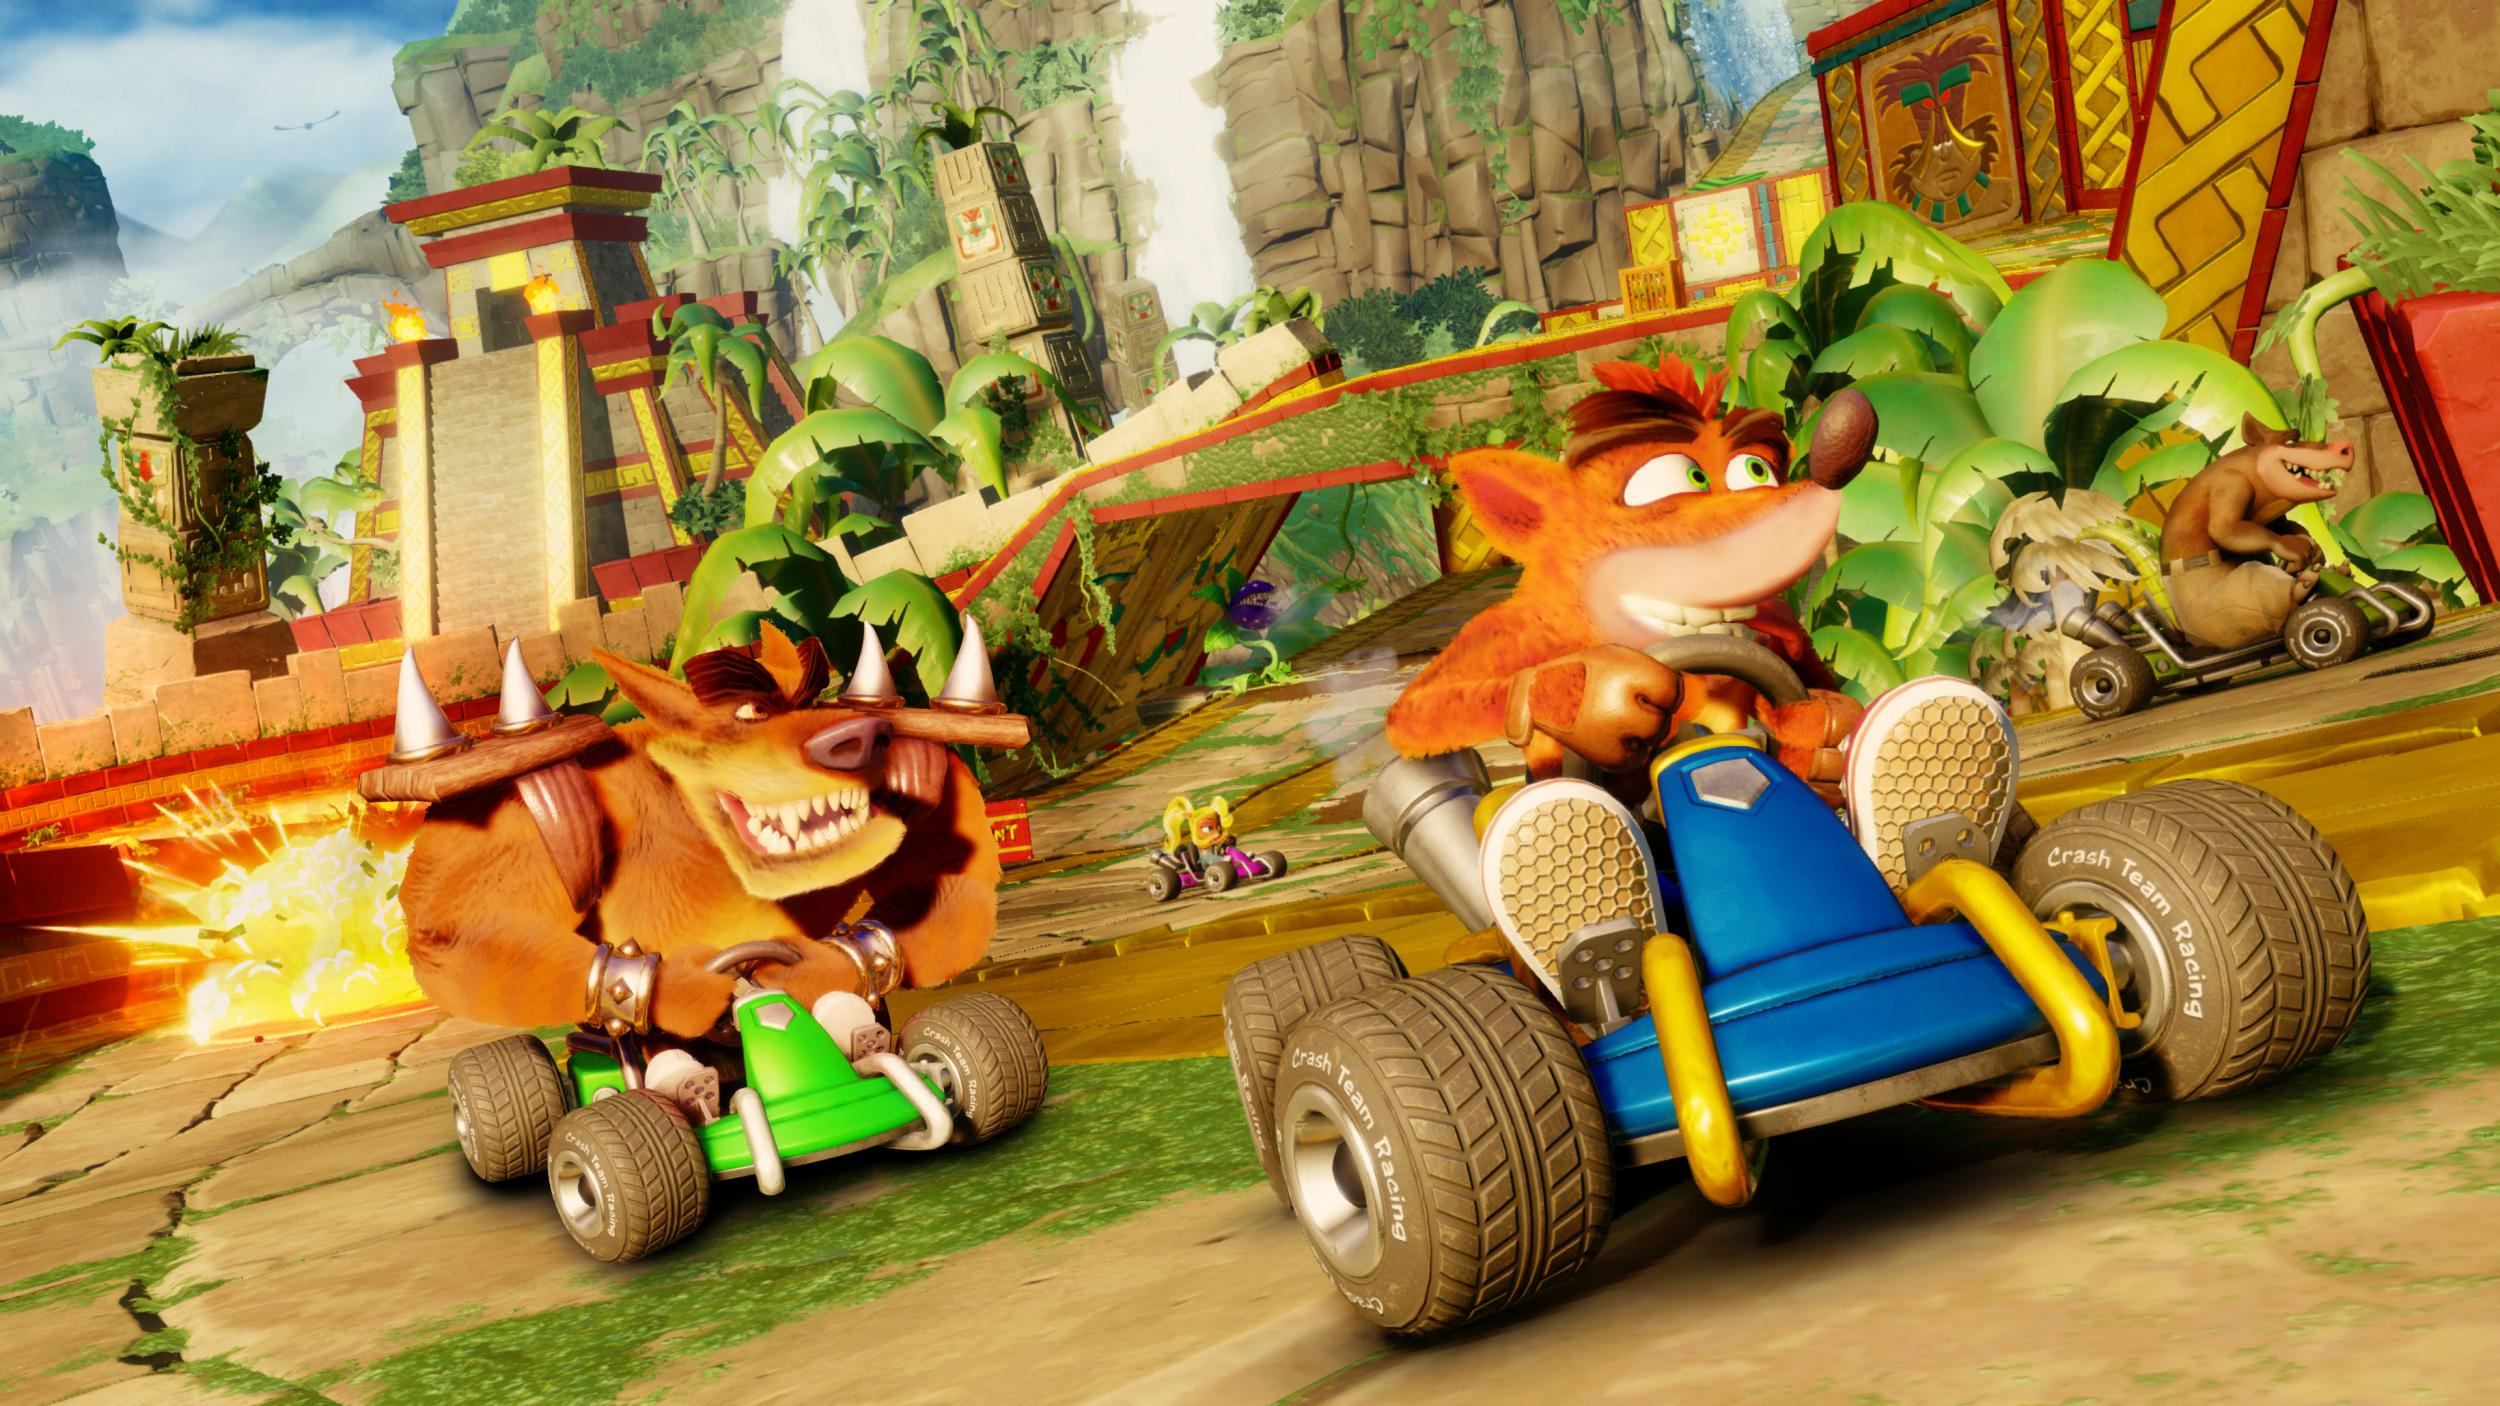 Preview: Crash Team Racing Nitro-Fueled is extremely fun but fails